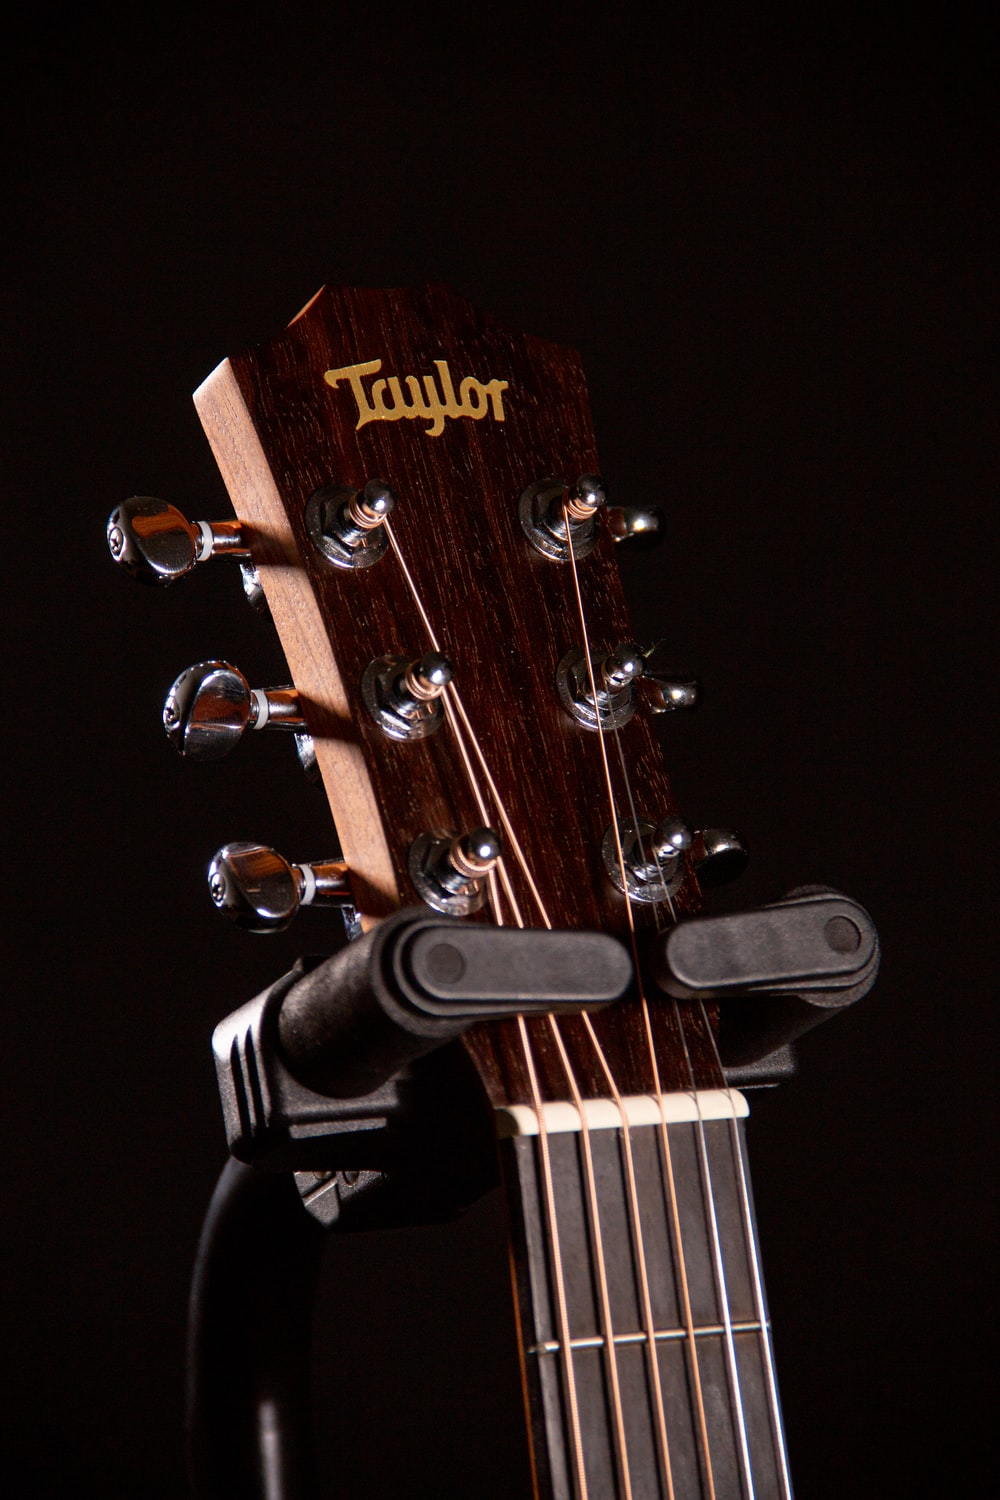 brown and black Taylor guitar headstock